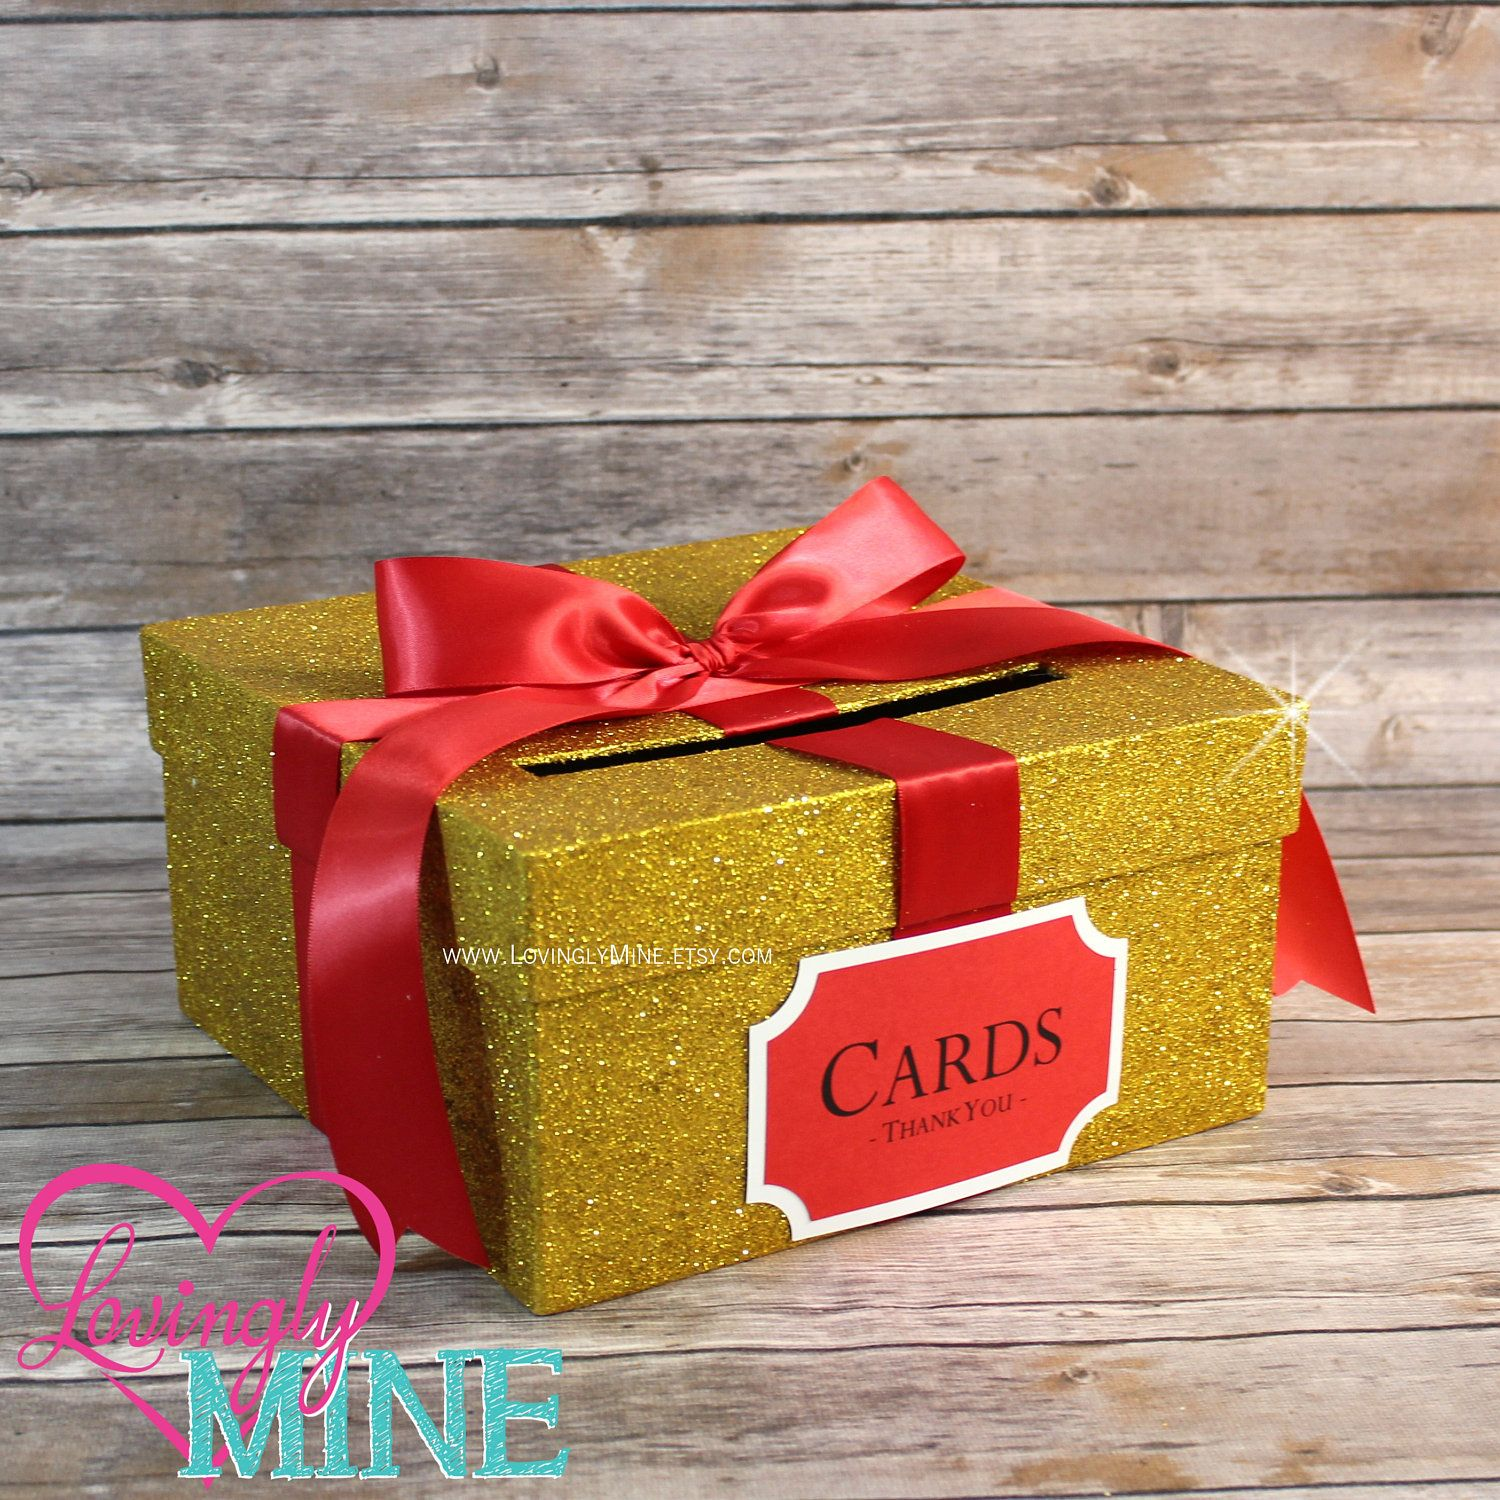 Card Box Glitter Yellow Gold Red Gift Money Box For Any Event